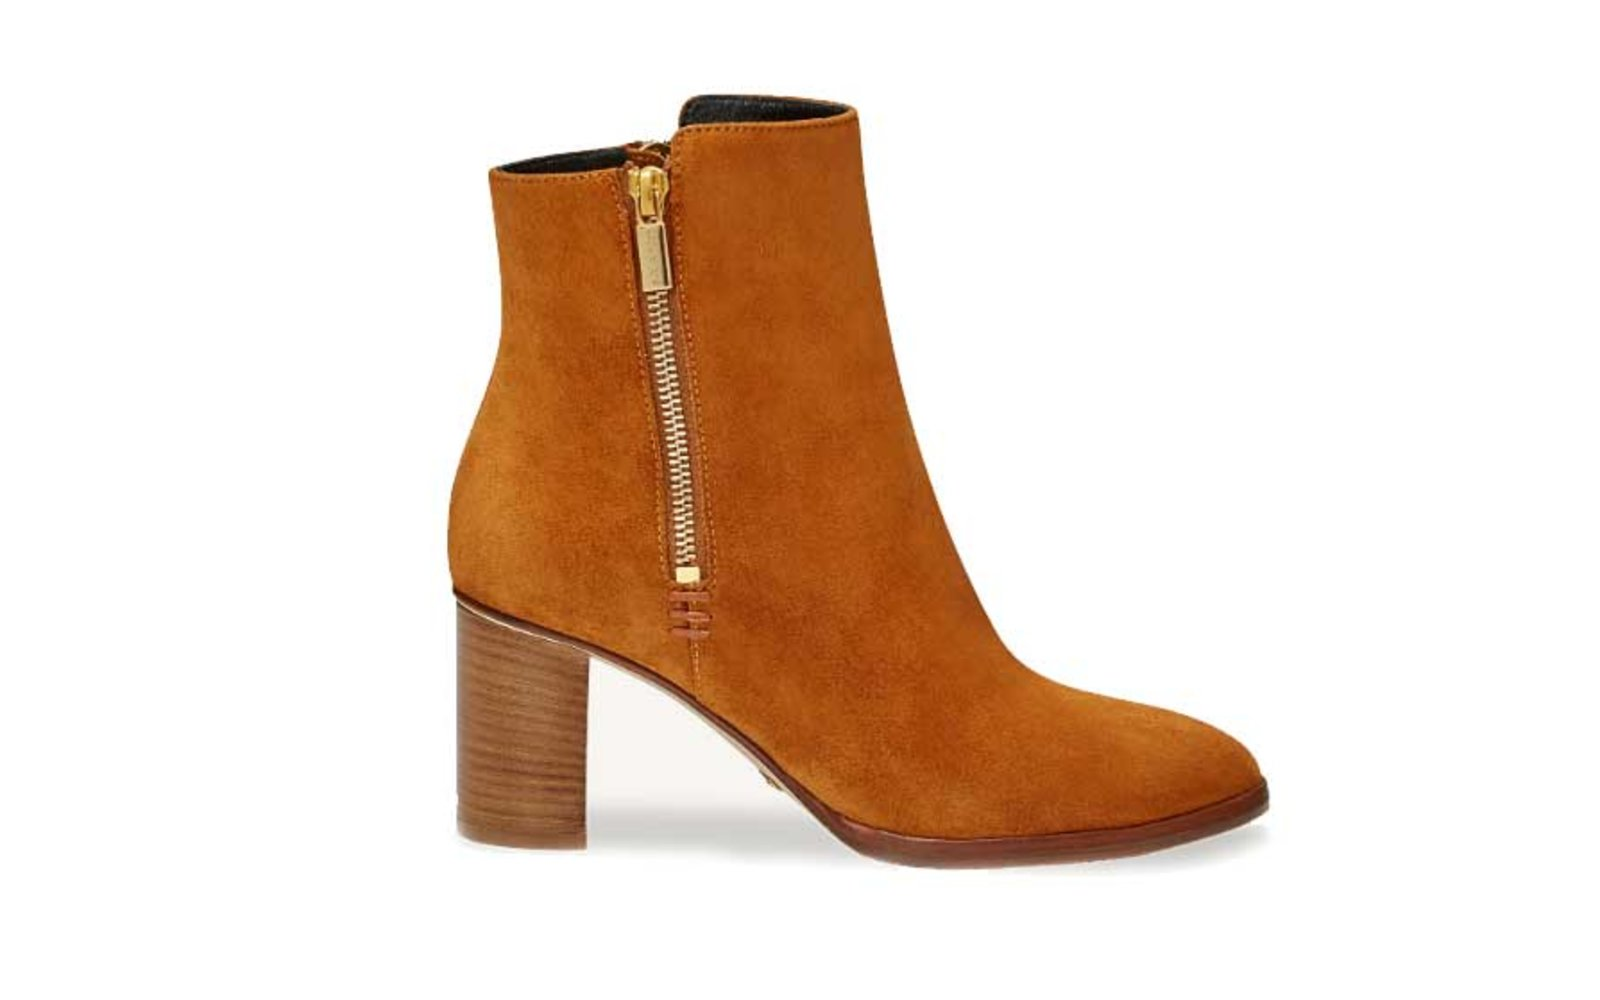 To Get: Sarah Flint Perfect Zip Bootie 70